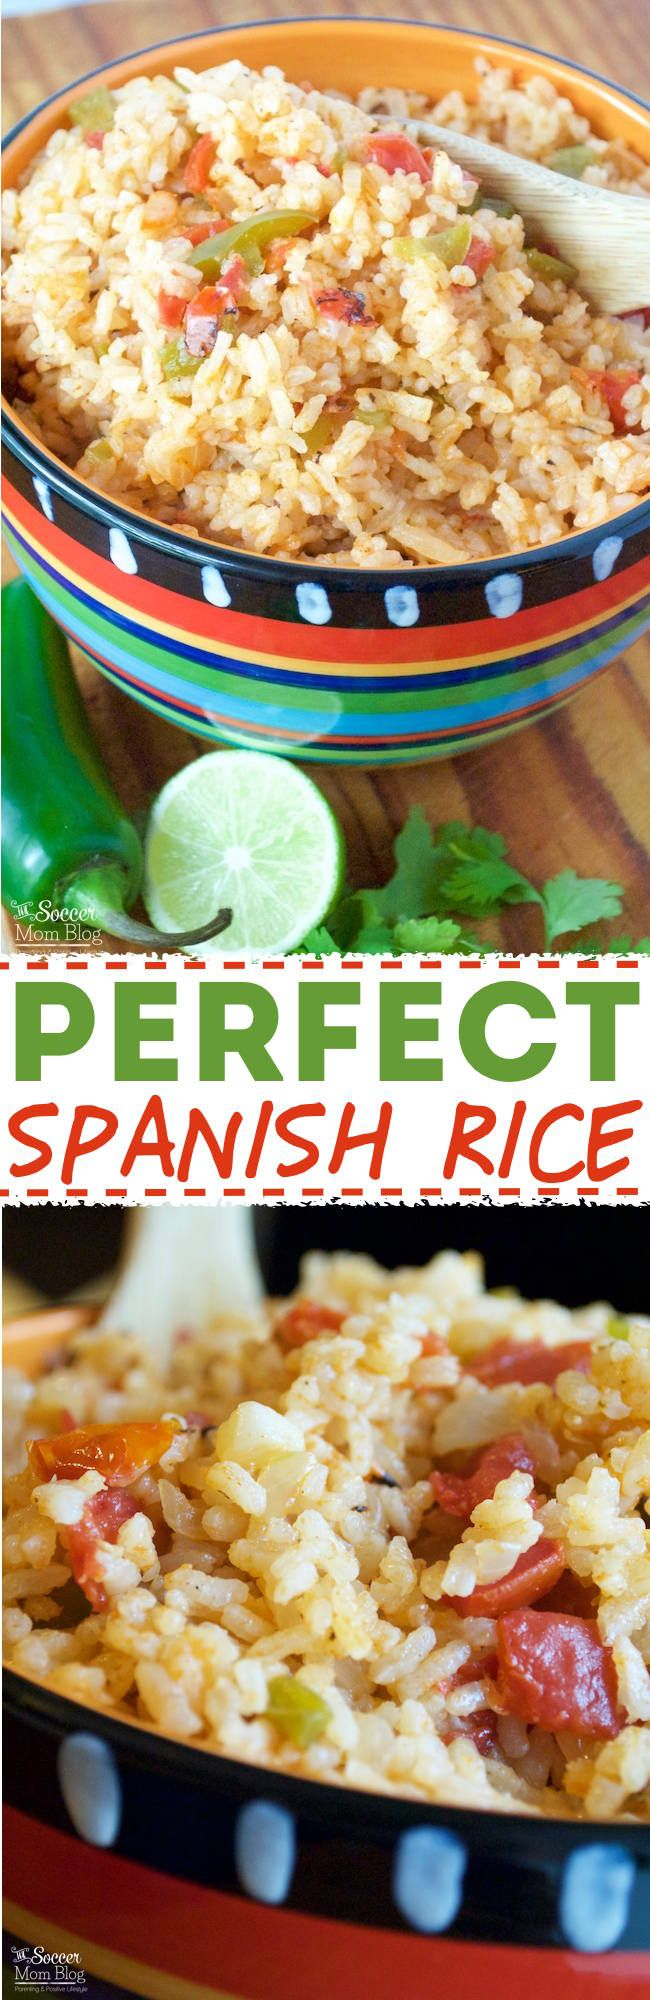 My husband's top secret recipe, passed down through generations and practiced to perfection. Fluffy, flavorful, and always a crowd-pleaser - this truly is the BEST Spanish or Mexican Rice EVER!